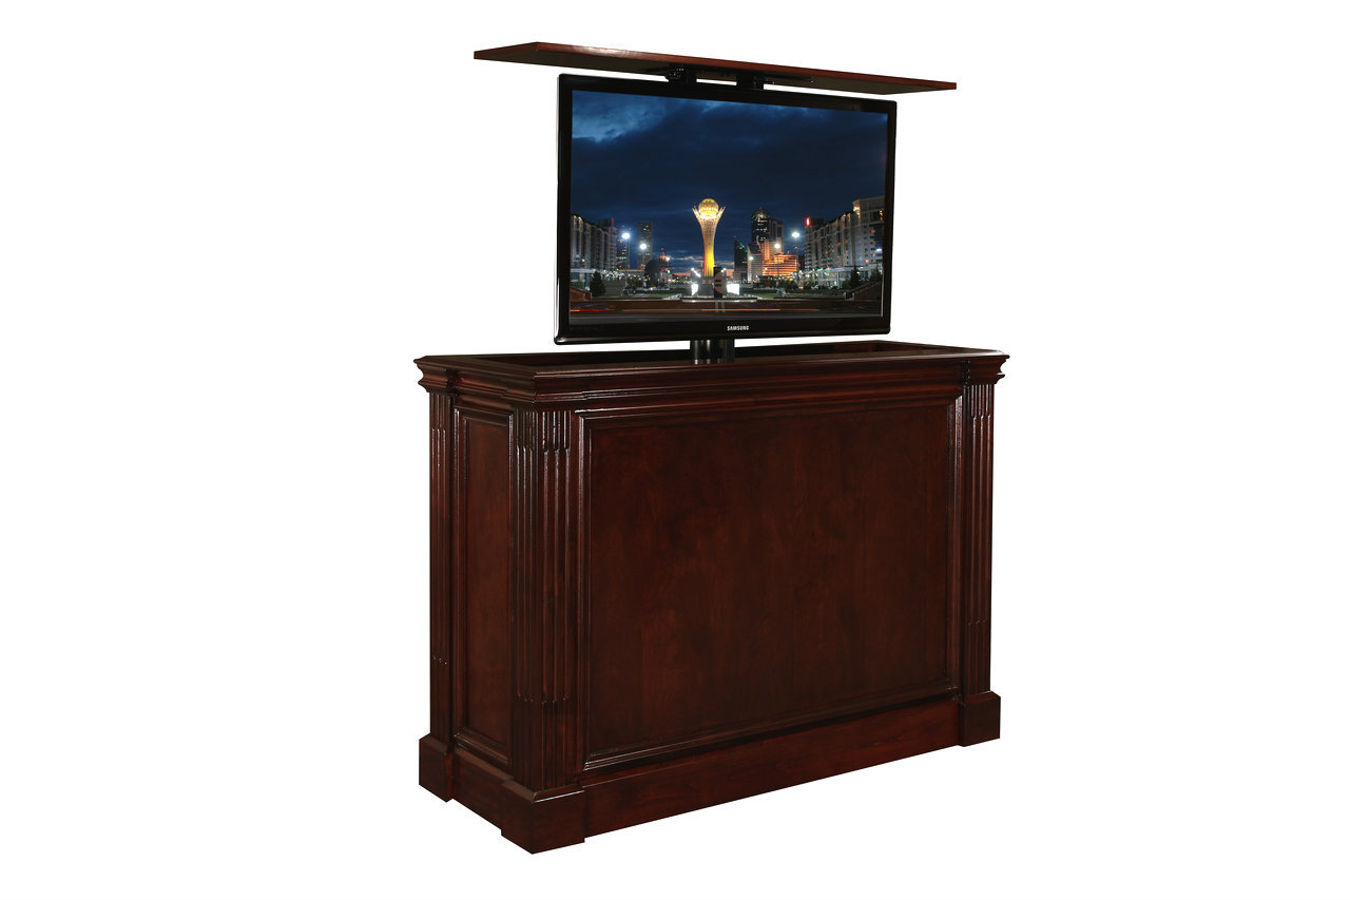 Ritz TV lift kit cabinet furniture is US Made, comes in 20 different finishes, has a 10 year warranty and holds up to 65 inch flat screens. End of bed or against the wall.